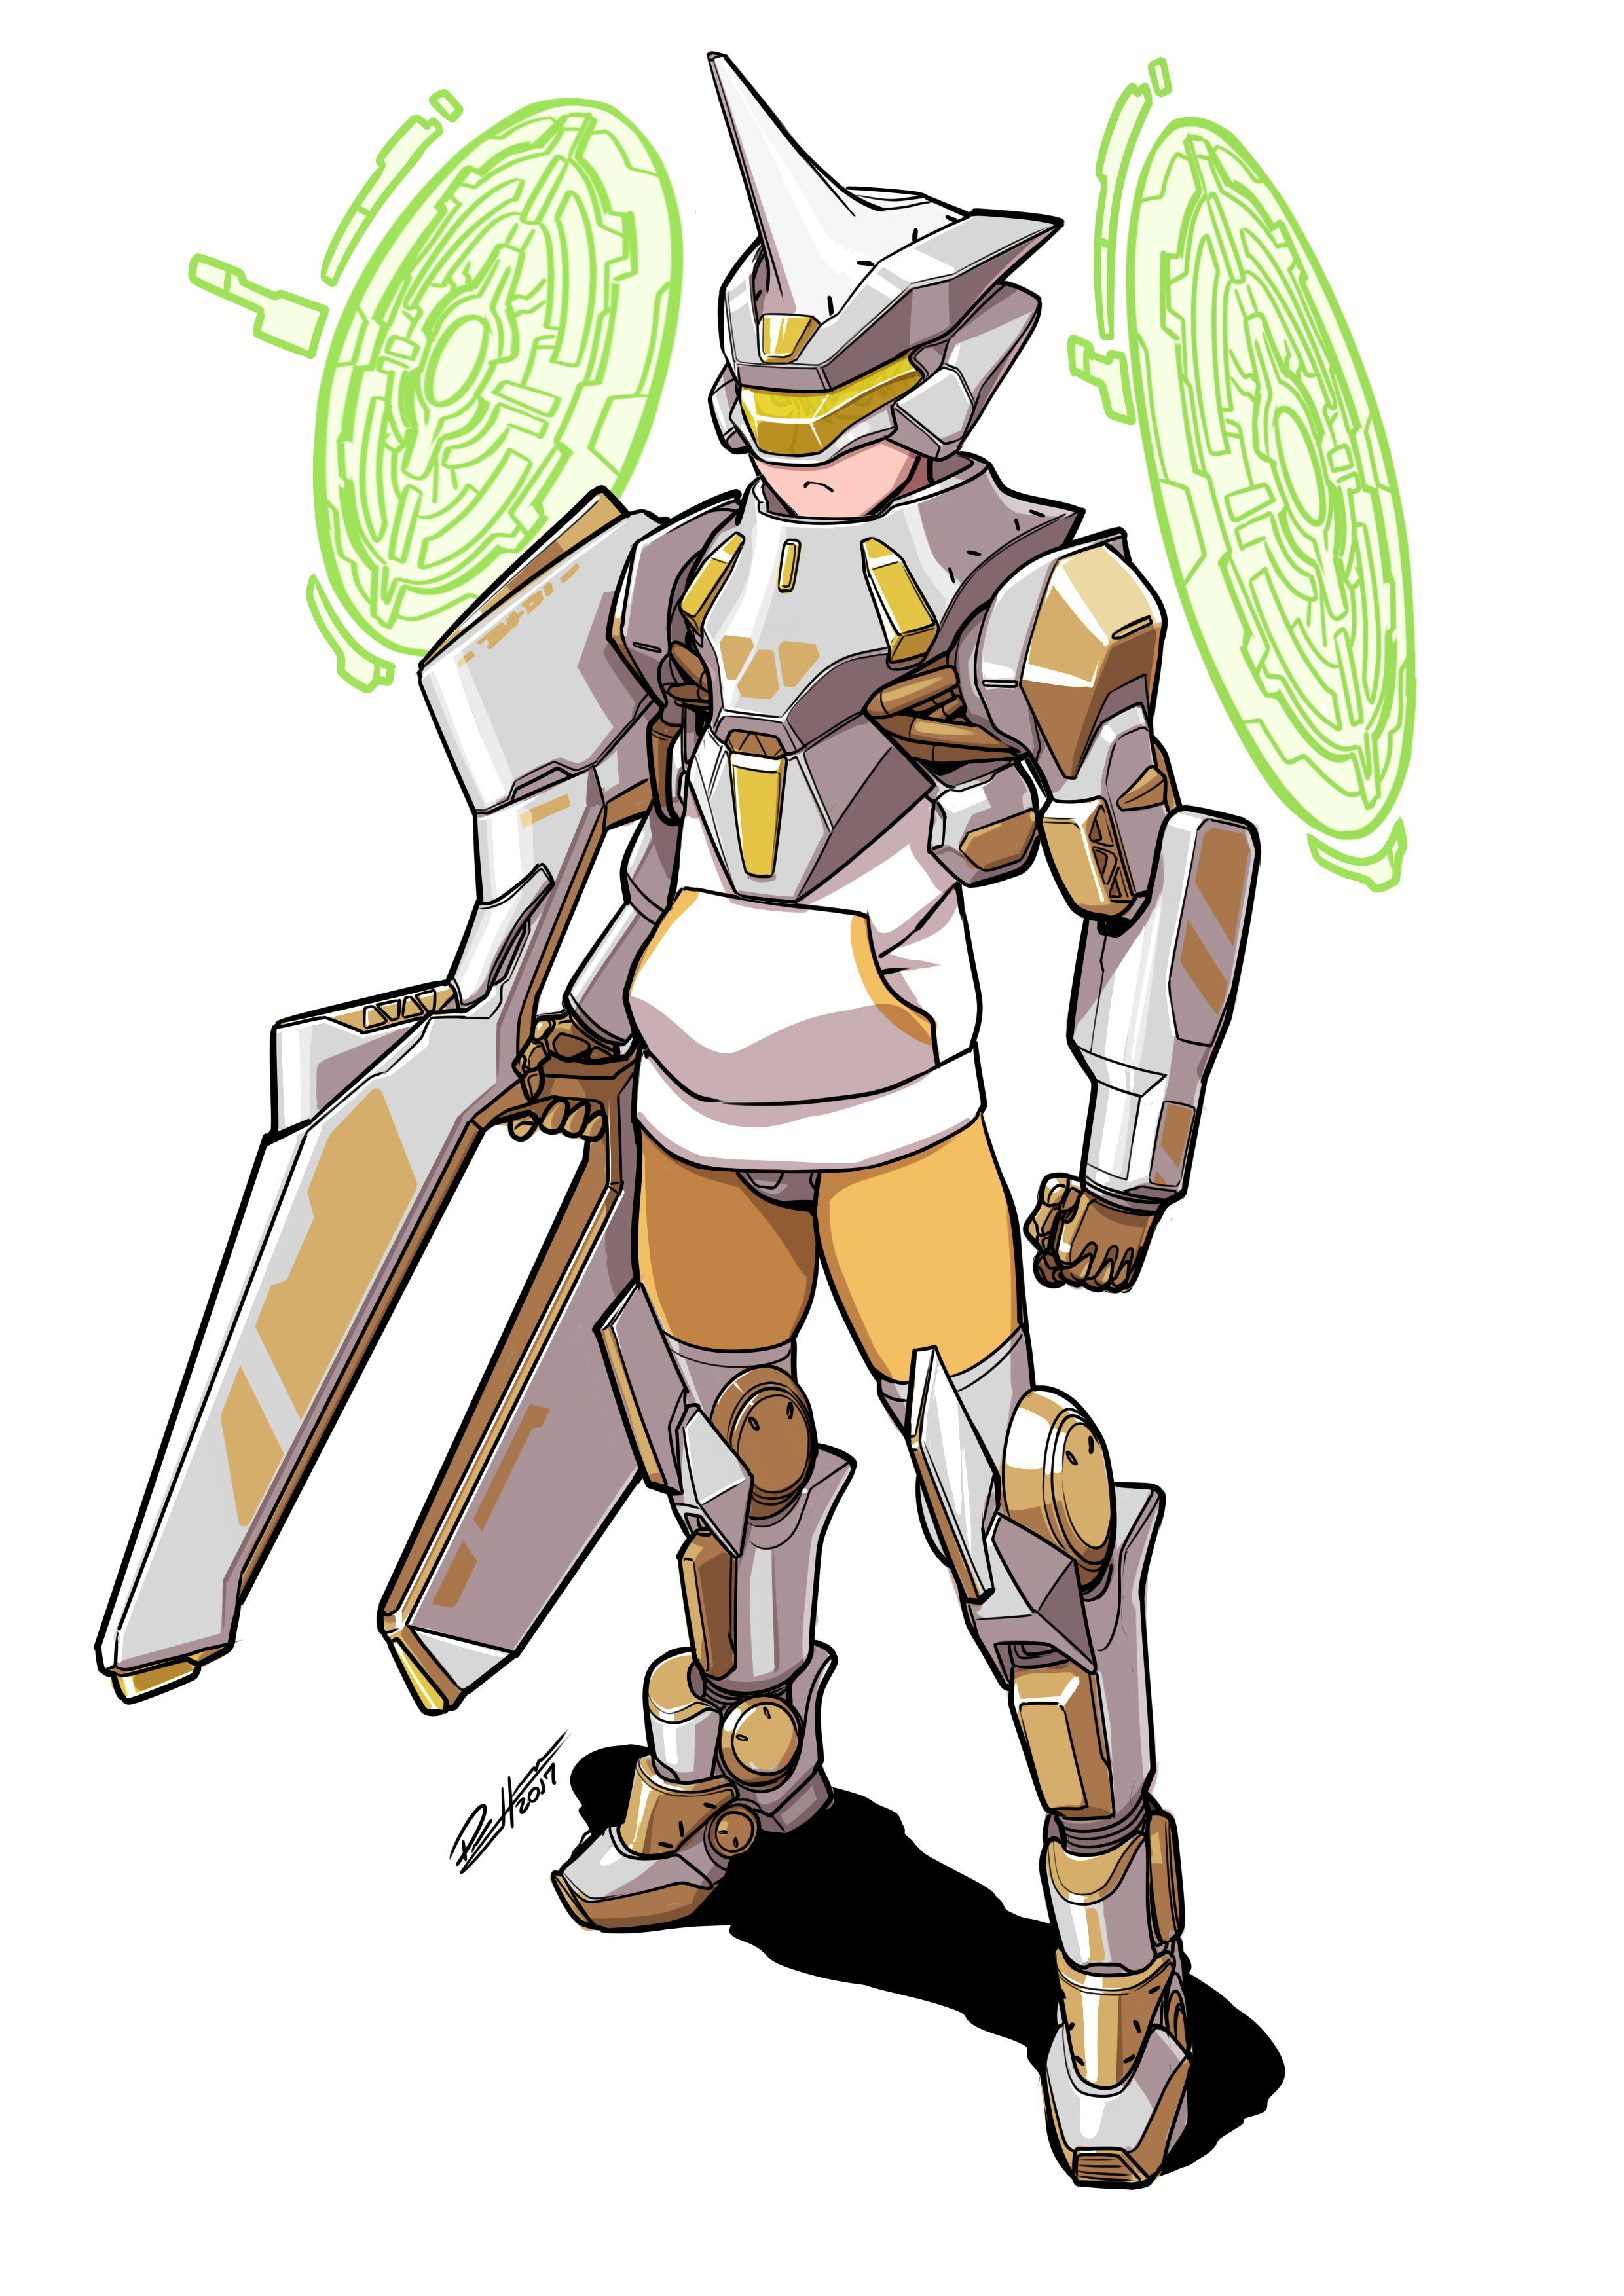 MM main char Armor Silver gold